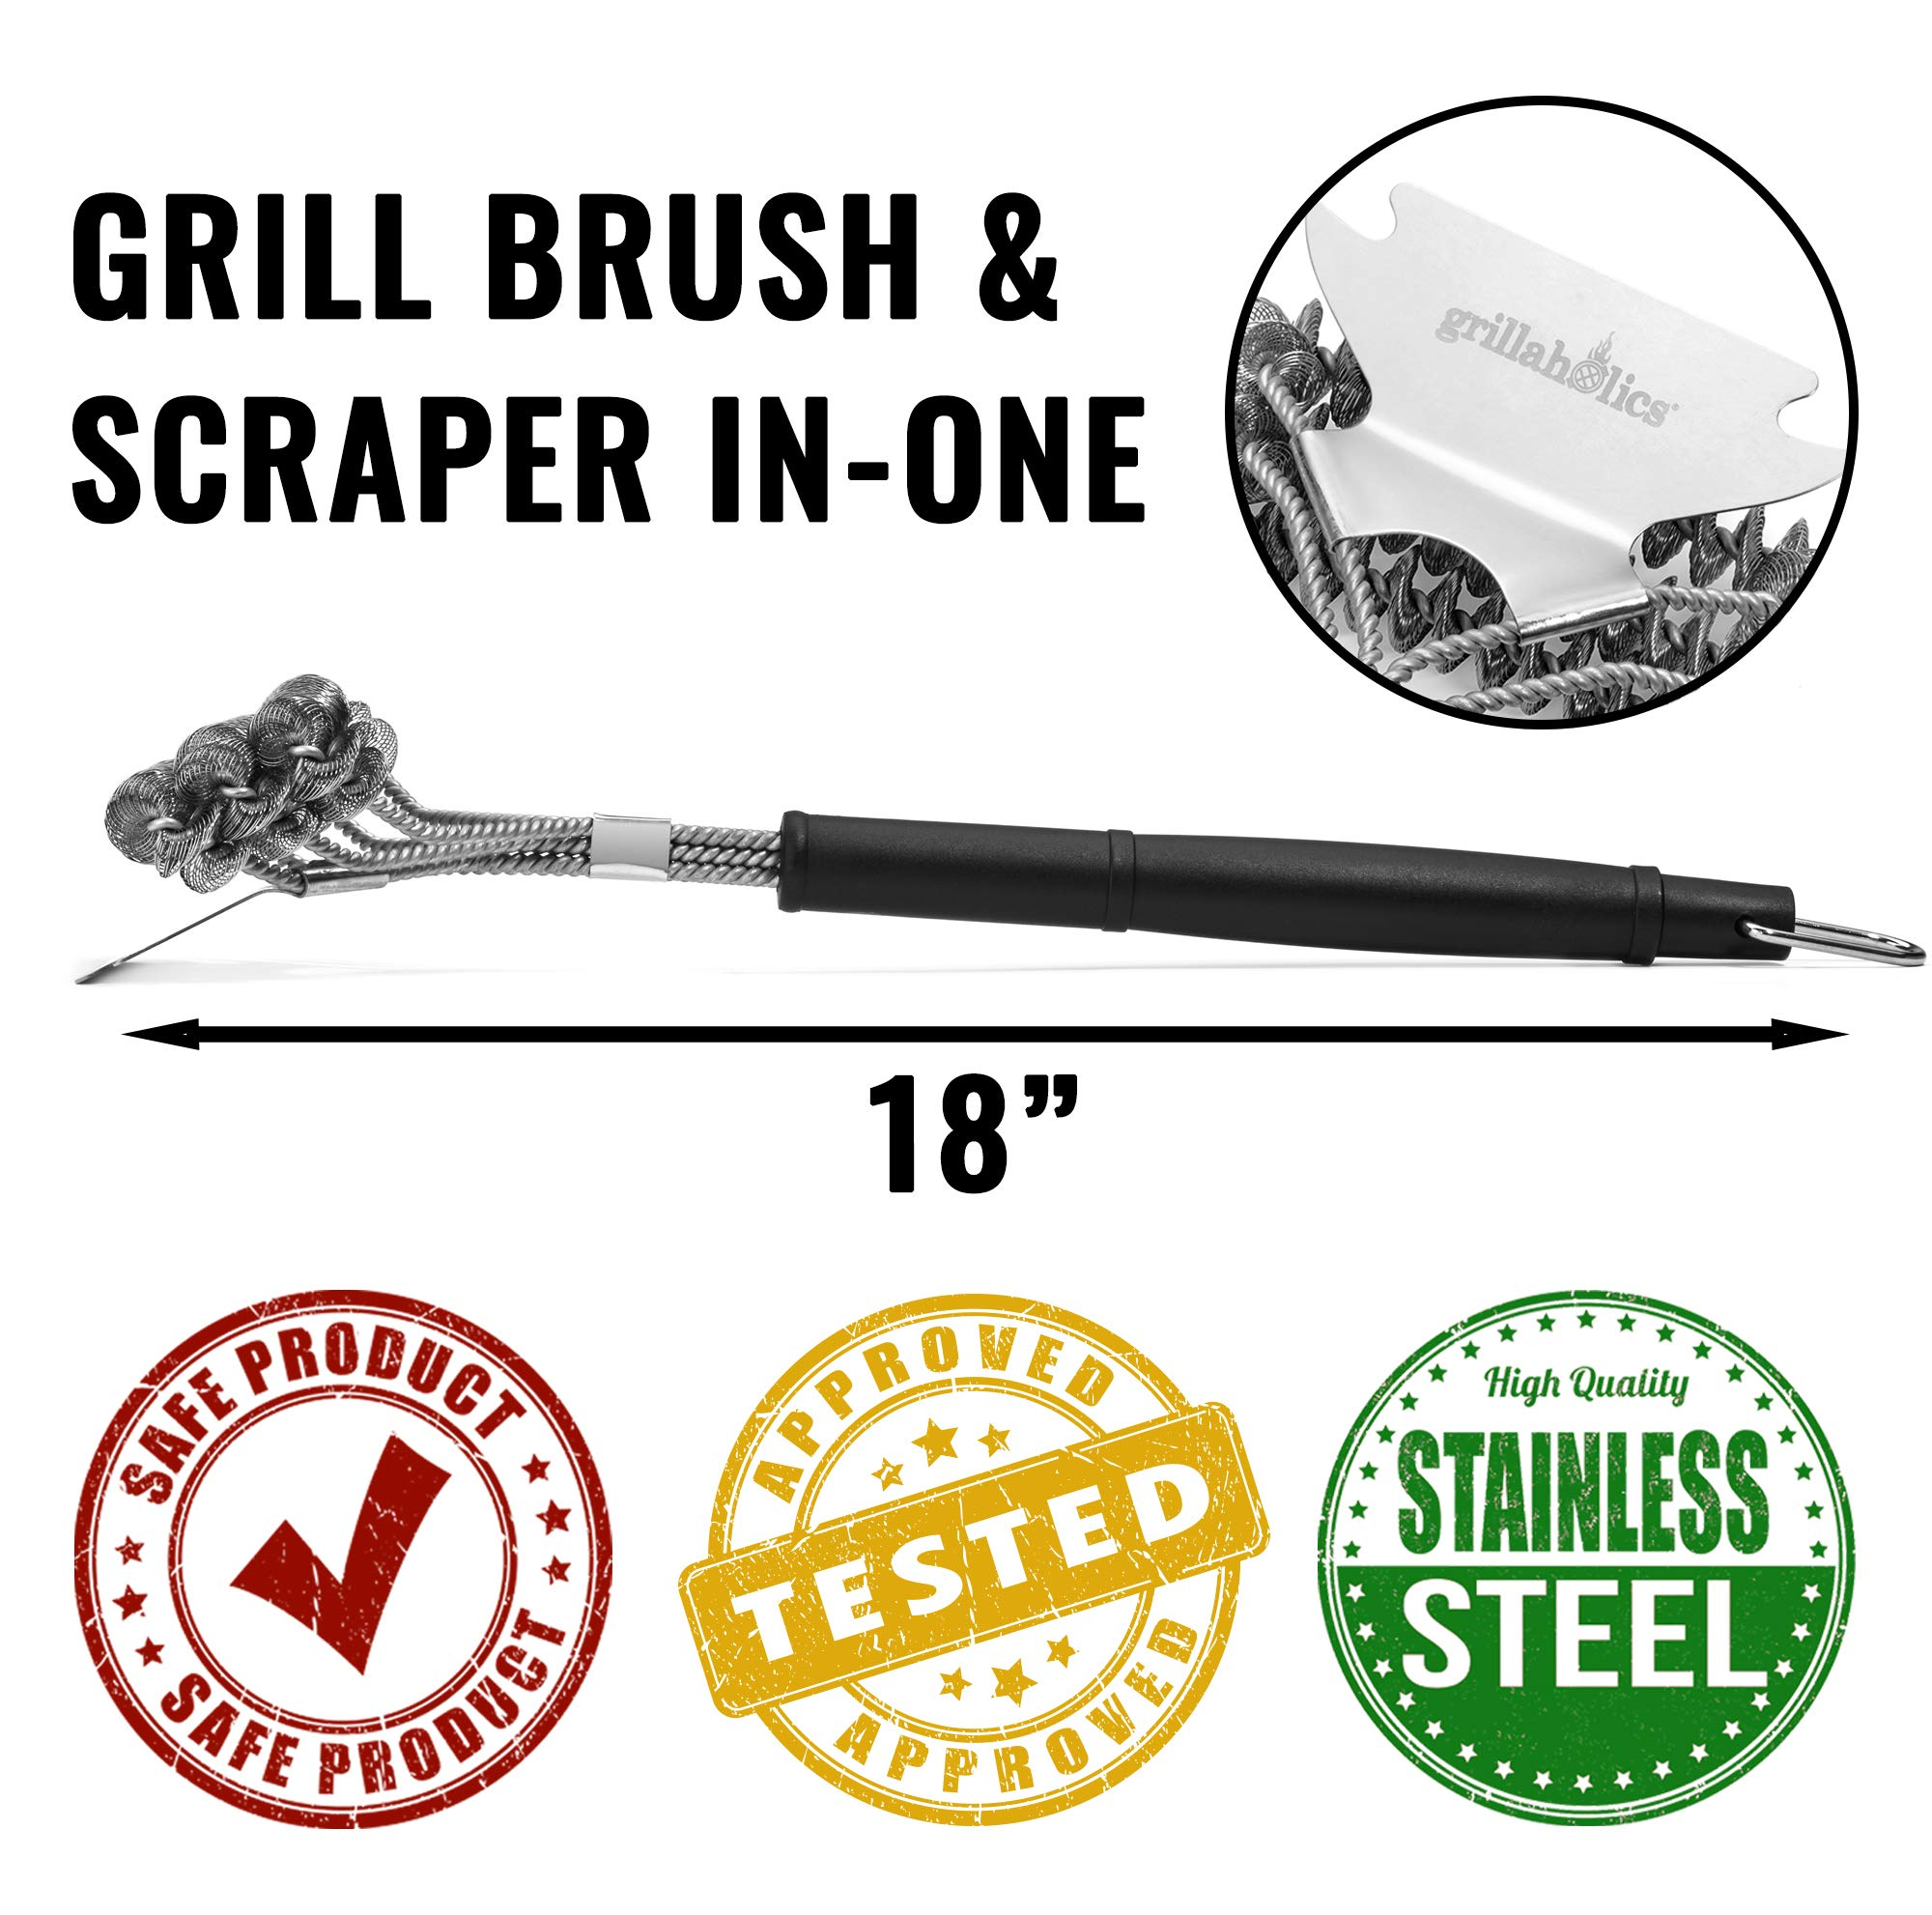 Grillaholics Grill Brush Bristle Free - Safe Grill Cleaning with No Wire Bristles - Professional Heavy Duty Stainless Steel Coils and Scraper - Lifetime Manufacturers Warranty by Grillaholics (Image #5)